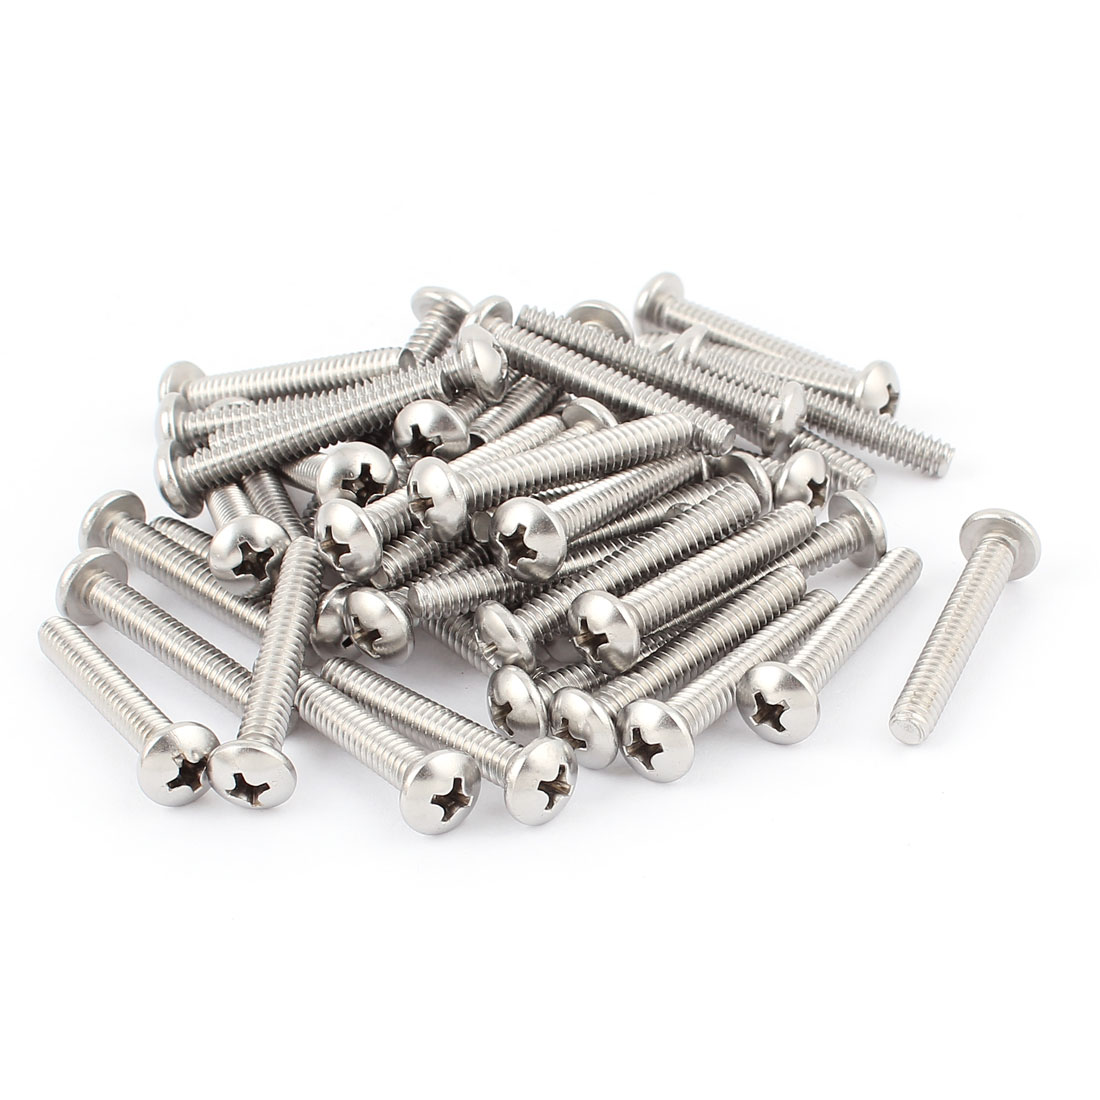 "50 Pcs #10-24 x 1 1/4"" Stainless Steel Round Phillips Truss Head Machine Screws"